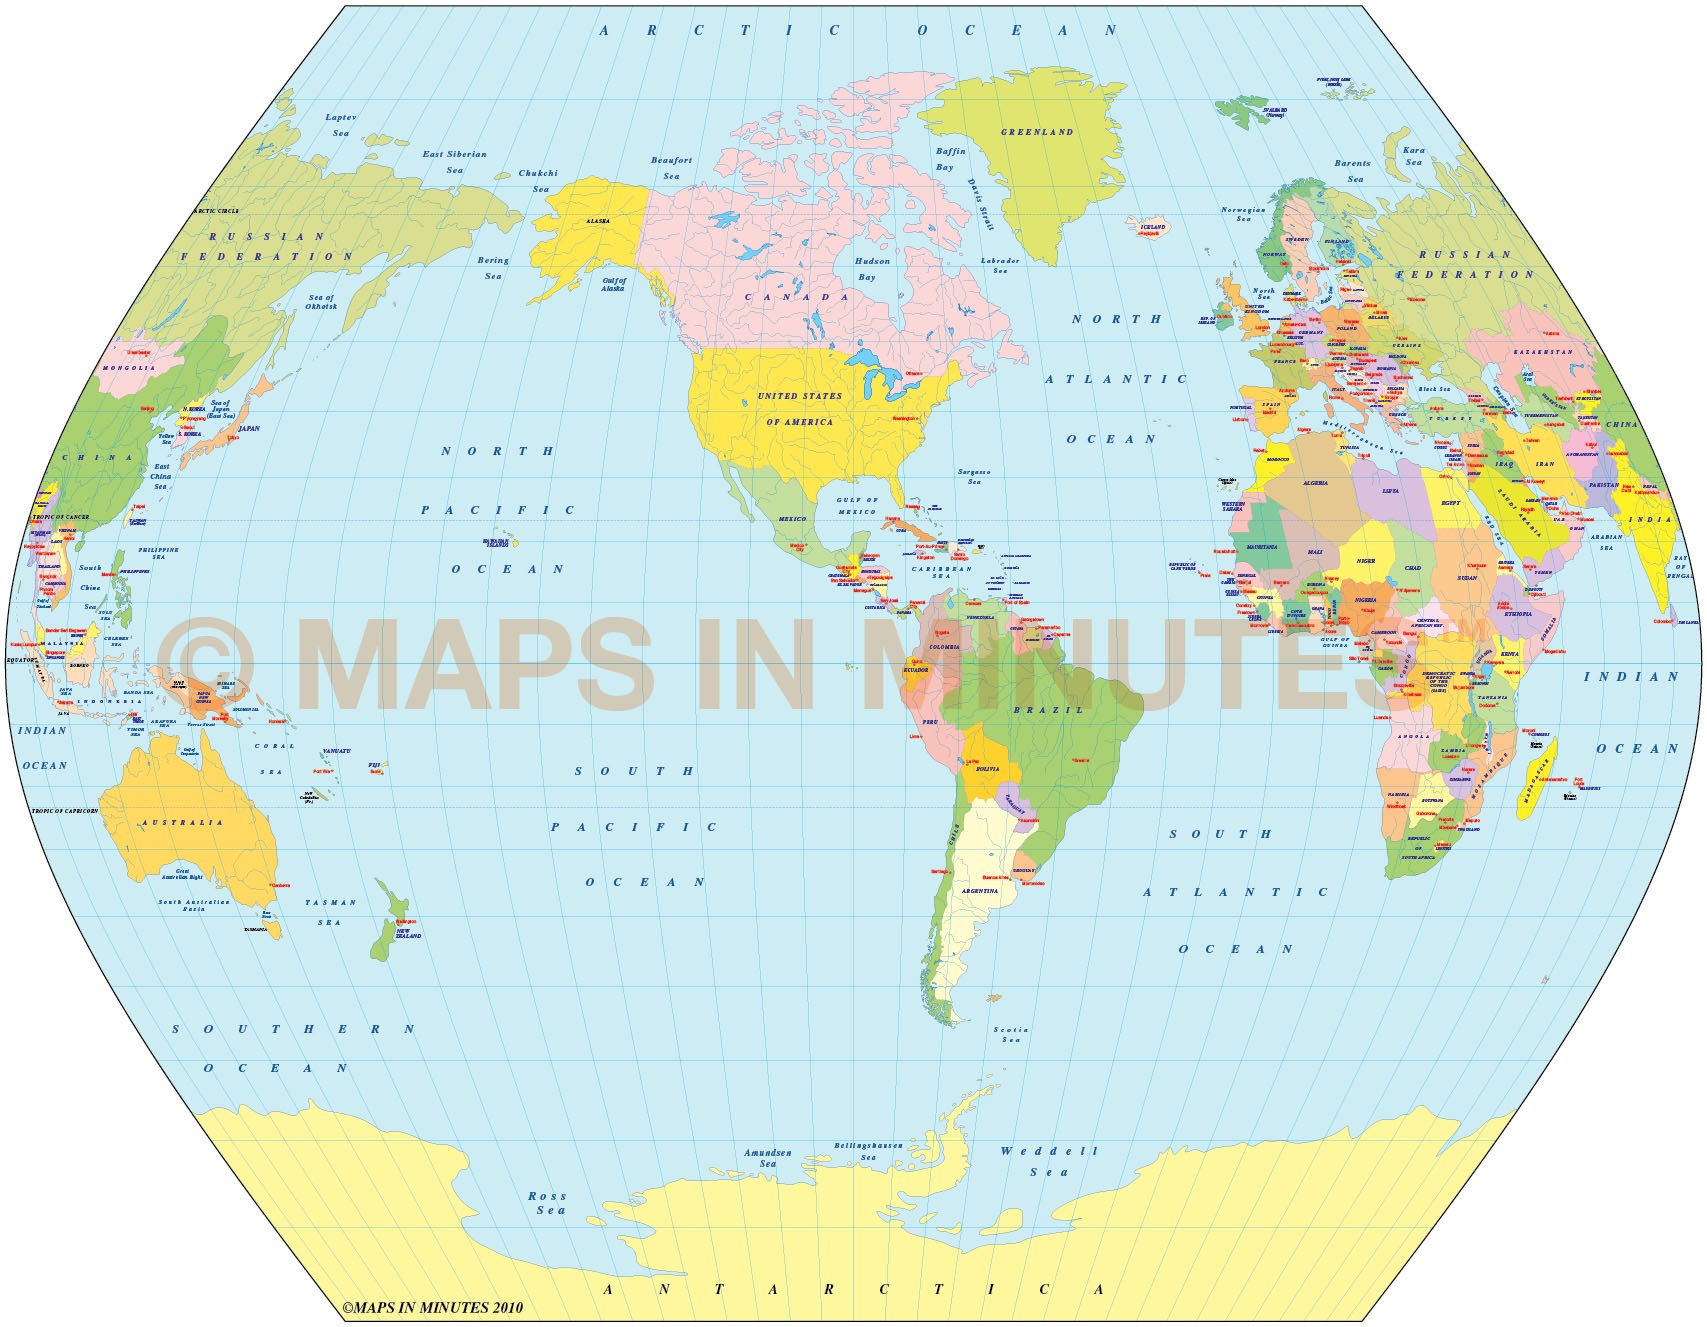 tsniigaik projection 100m scale us centric world map